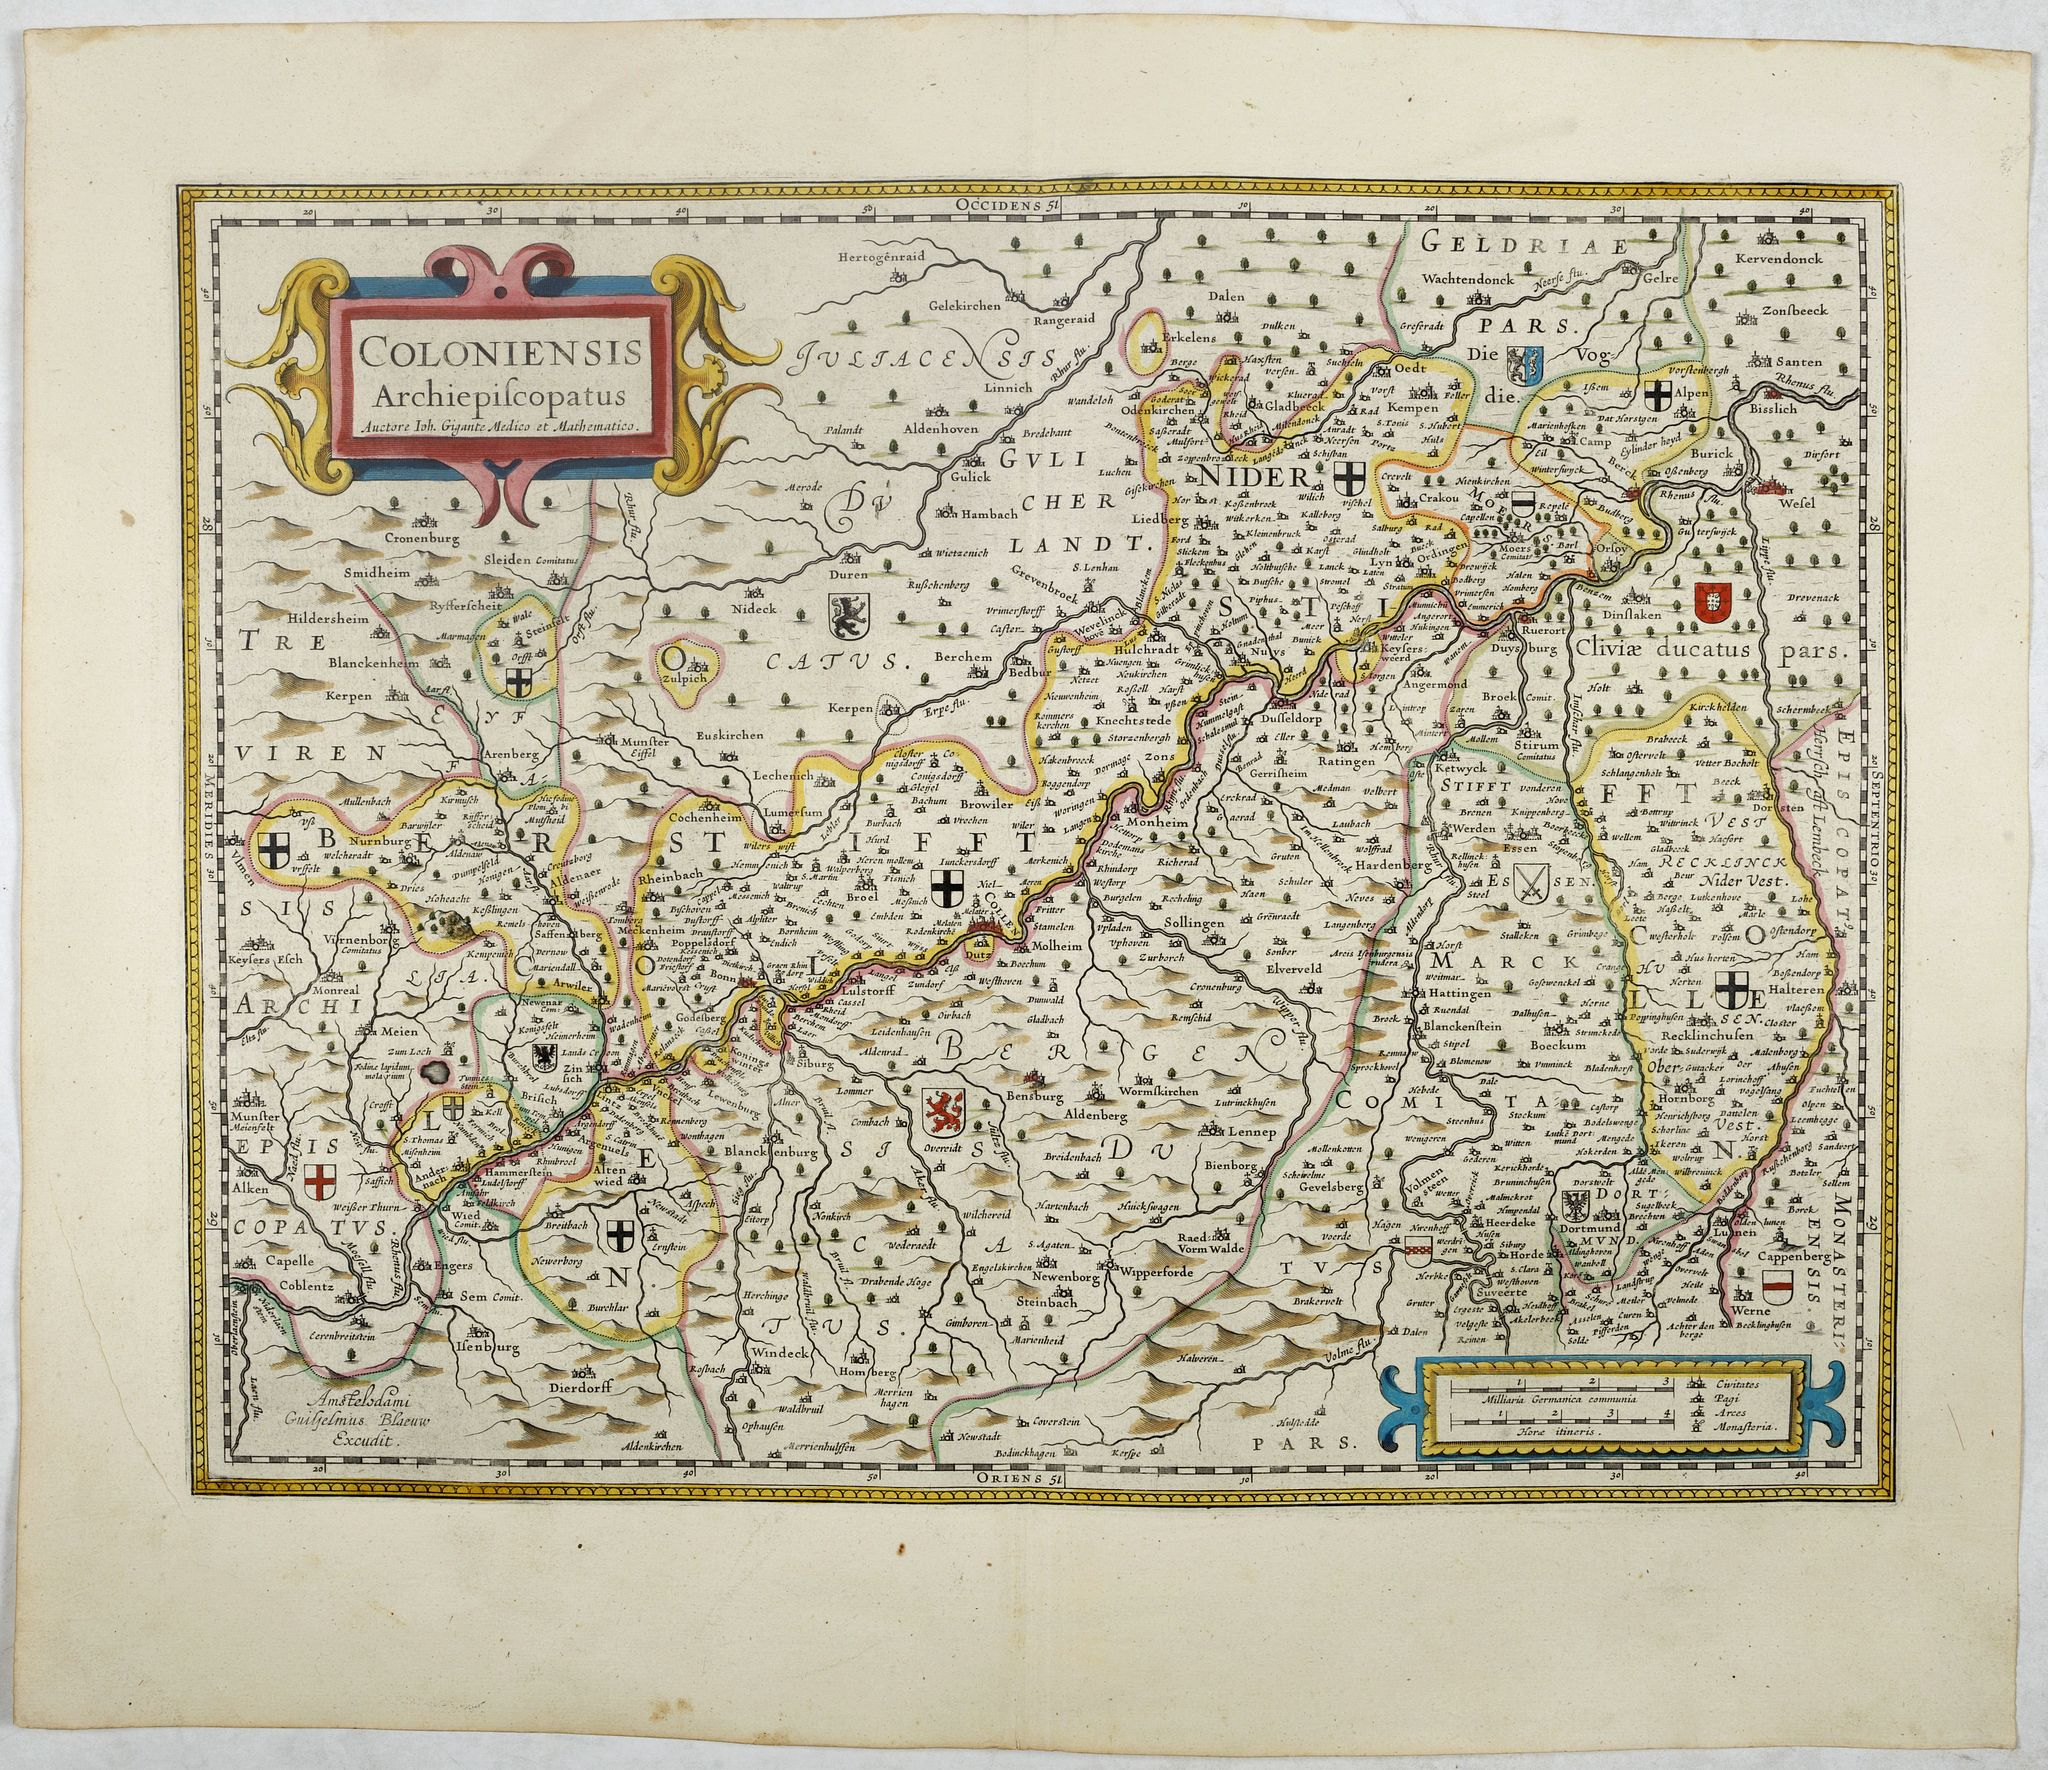 BLAEU, W.,  Coloniensis Archiepiscopatus, antique map, old maps